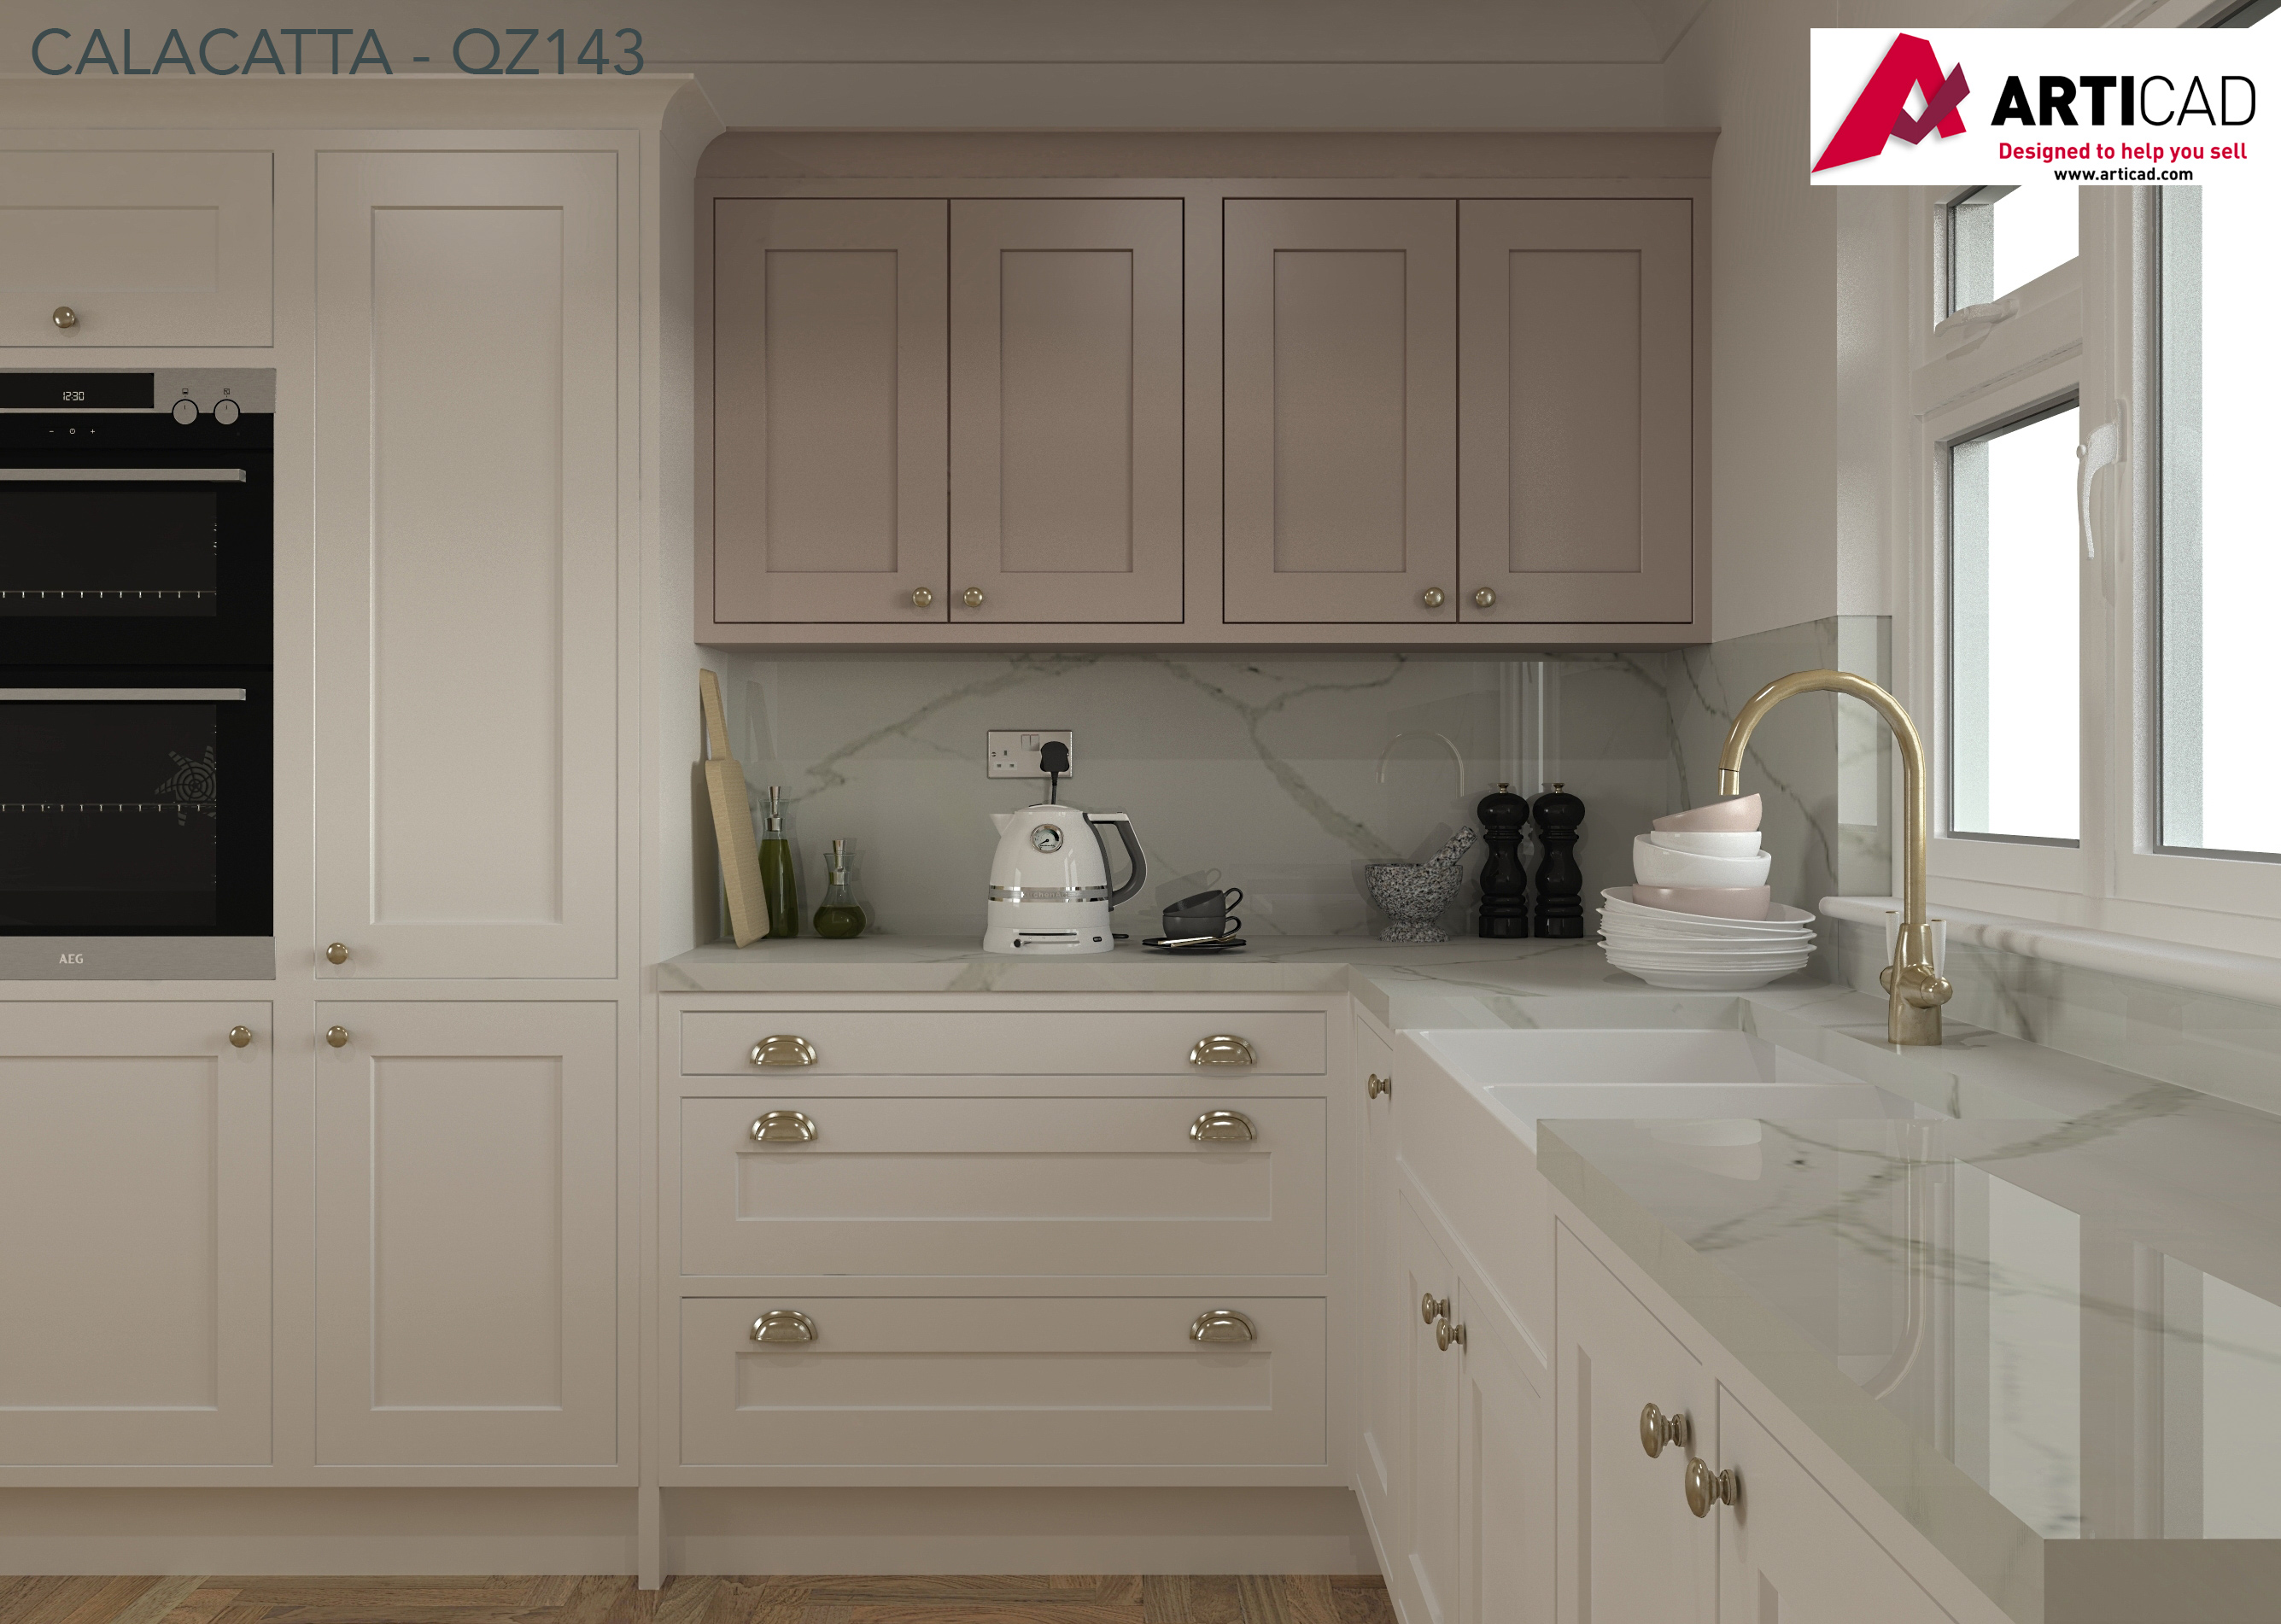 CRL Quartx Calacatta on Articad